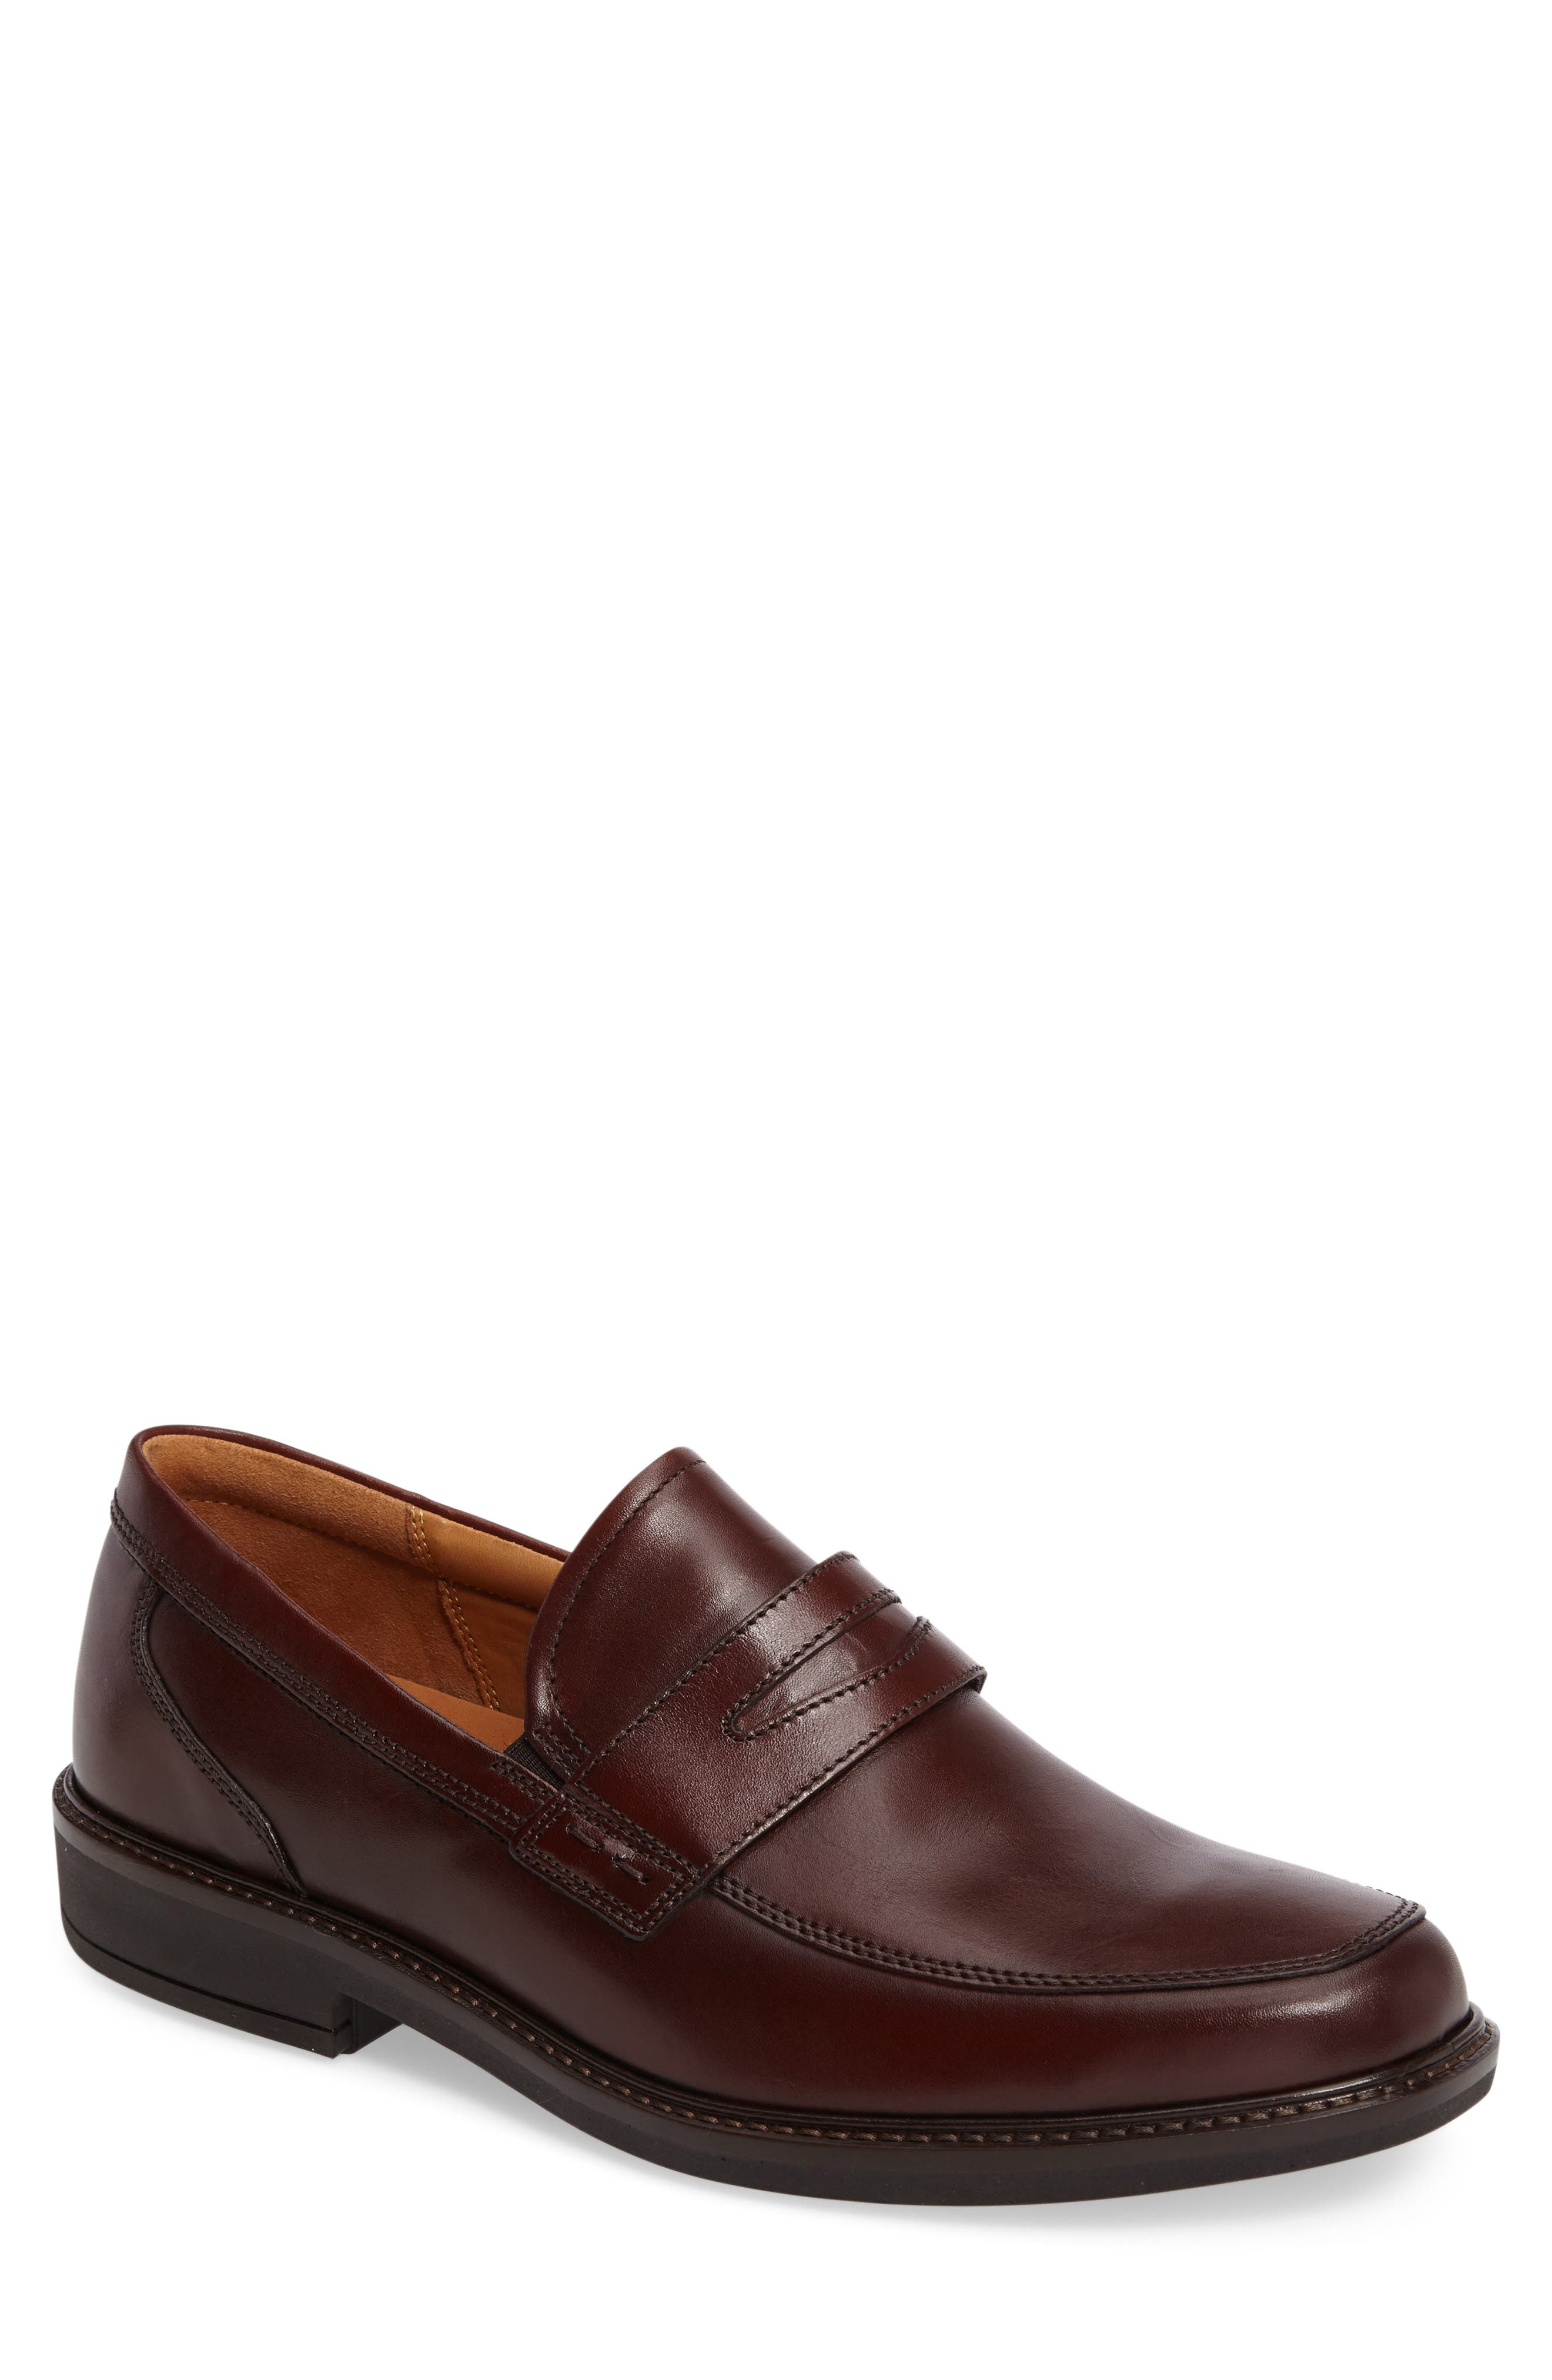 Holton Penny Loafer,                             Main thumbnail 2, color,